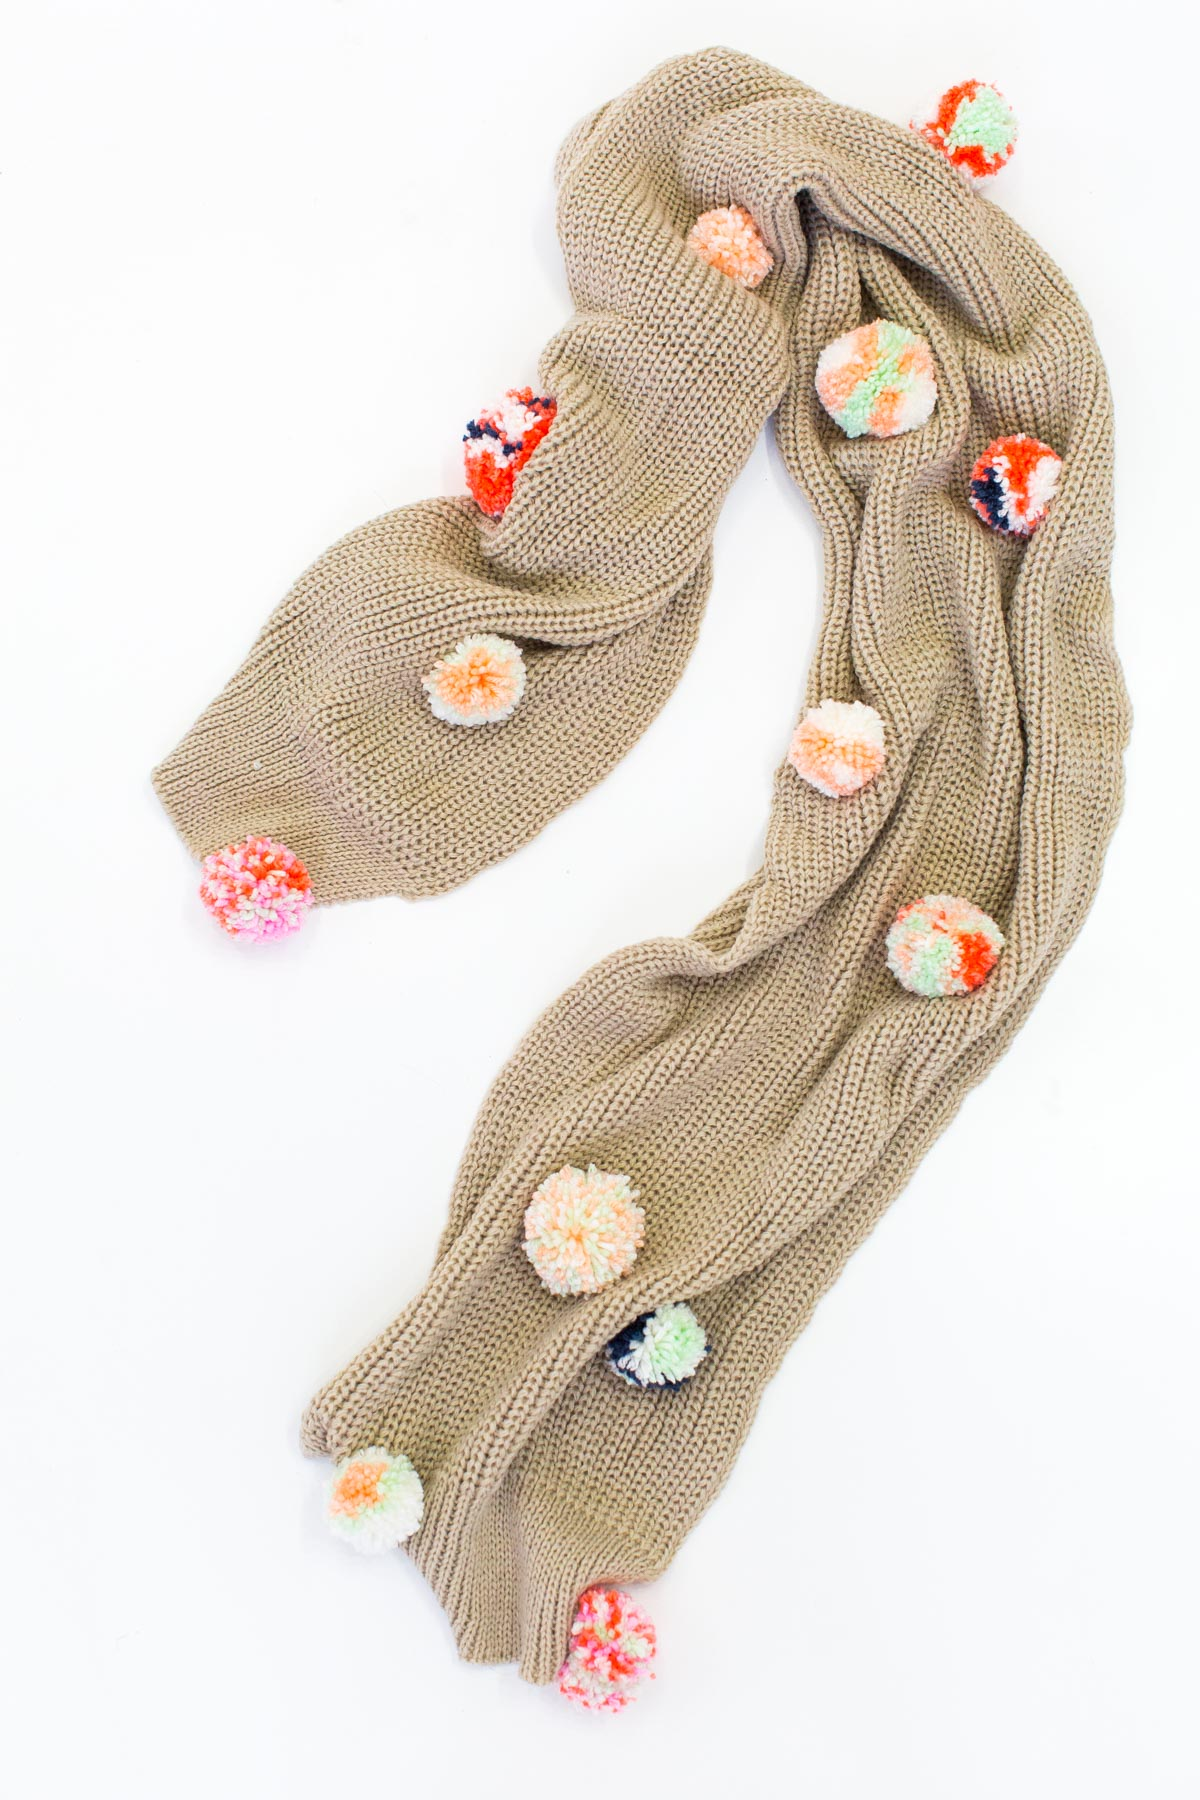 DIY Statement Pom Pom Scarf by Ashley Rose of the award winning DIY and lifestyle blog, Sugar & Cloth.